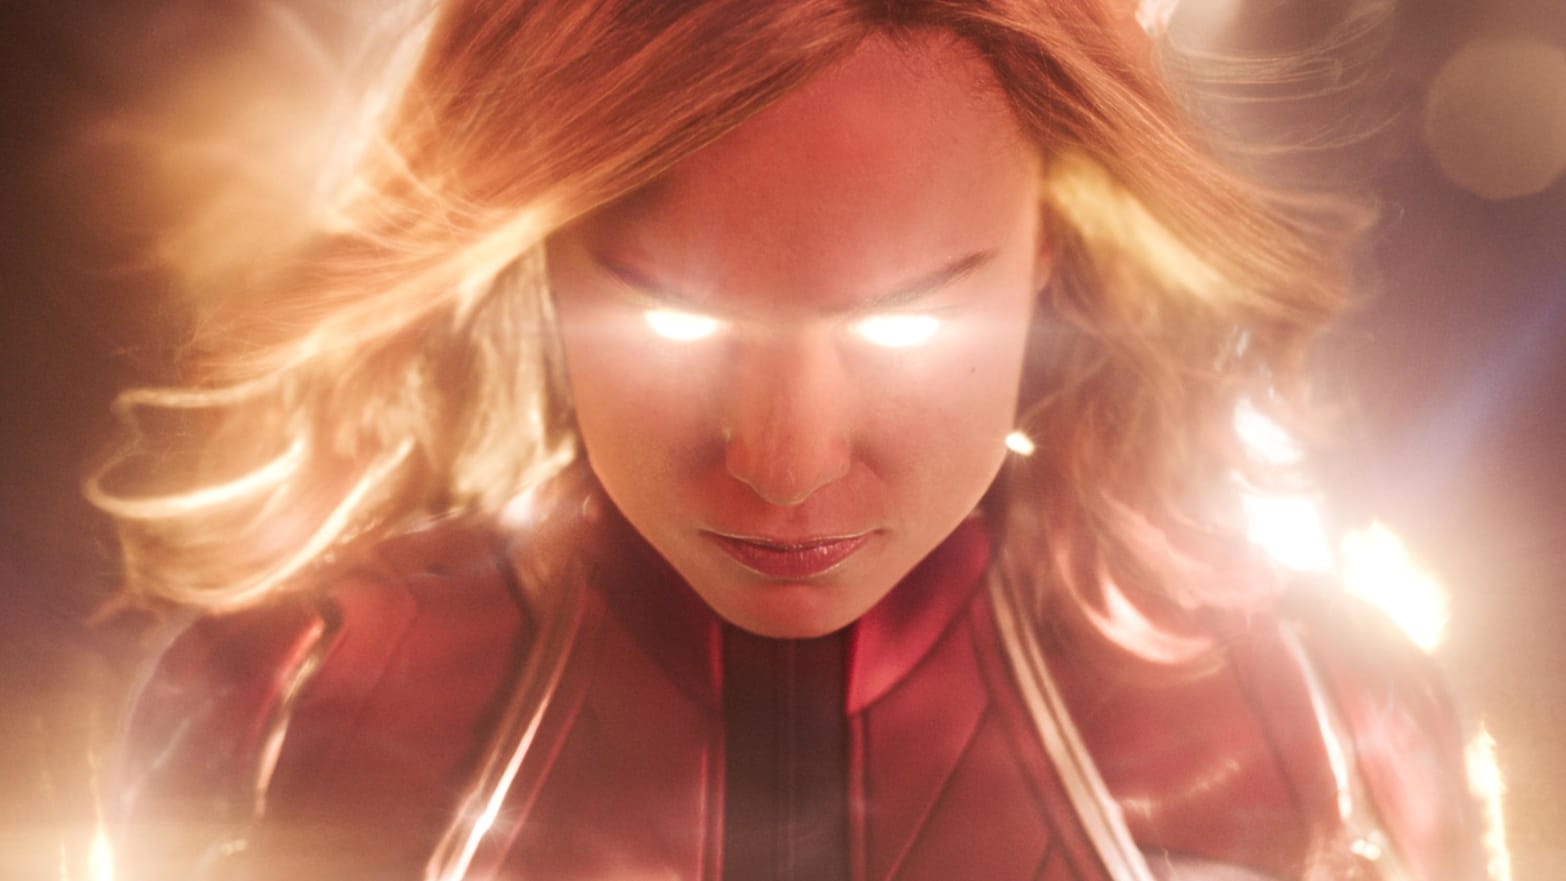 How Brie Larson's 'Captain Marvel' Made Angry White Men Lose Their Damn Minds